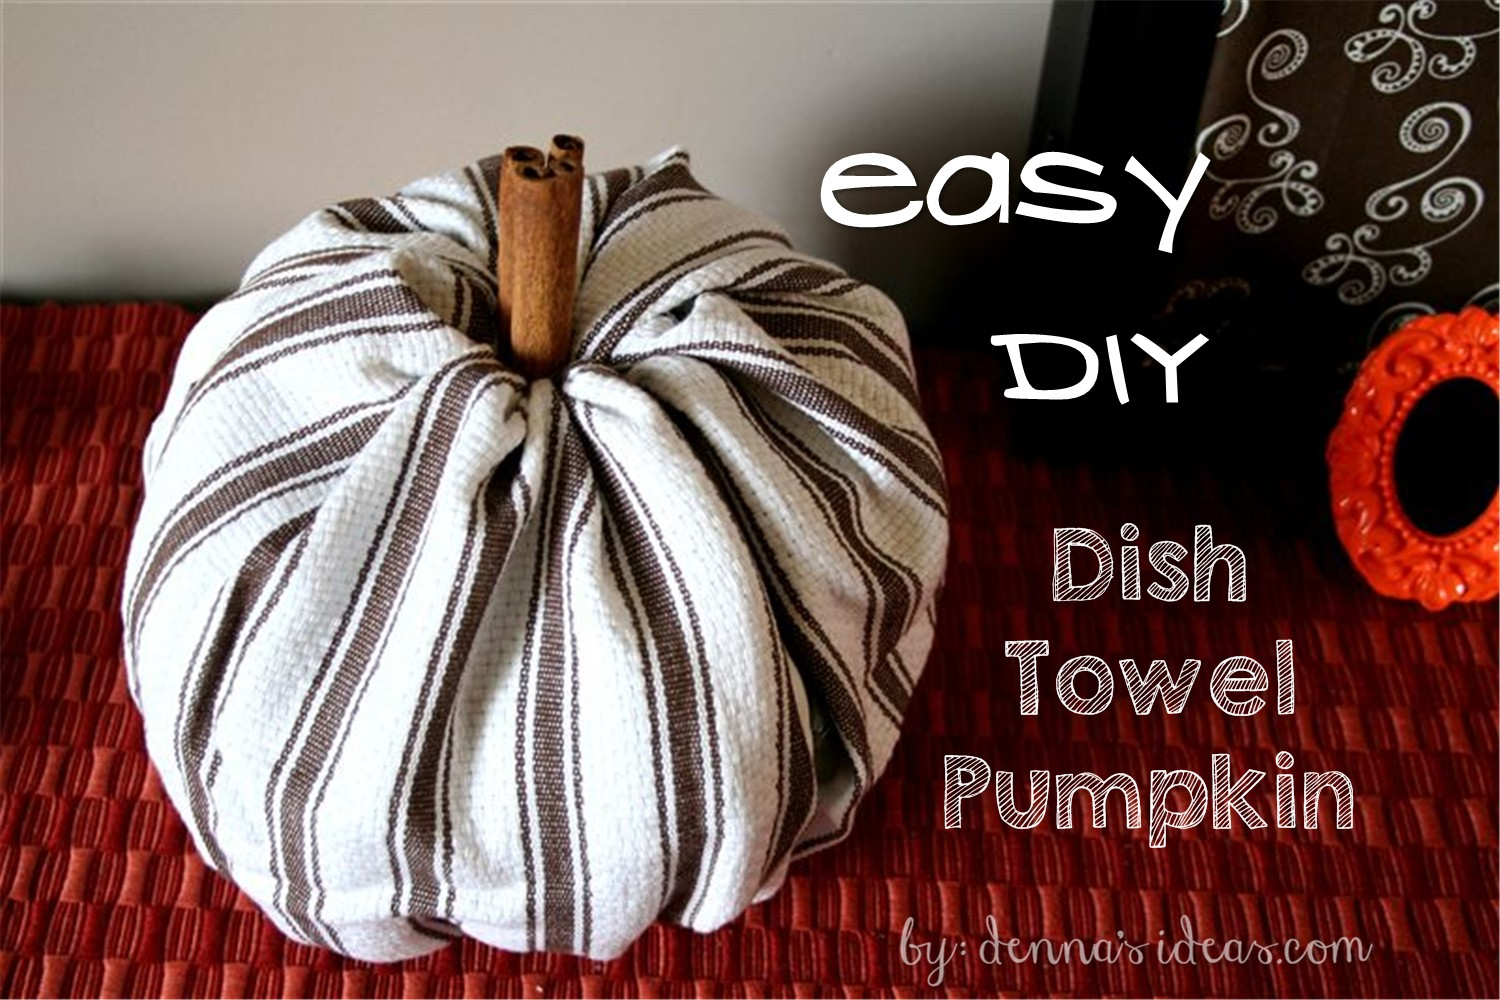 ... fast and easy DIY fabric pumpkins by dennasideas.com Fall Decor ideas by dennau0027s & Easy DIY No-Sew Fabric Pumpkins for Fall Decor | dennau0027s ideas